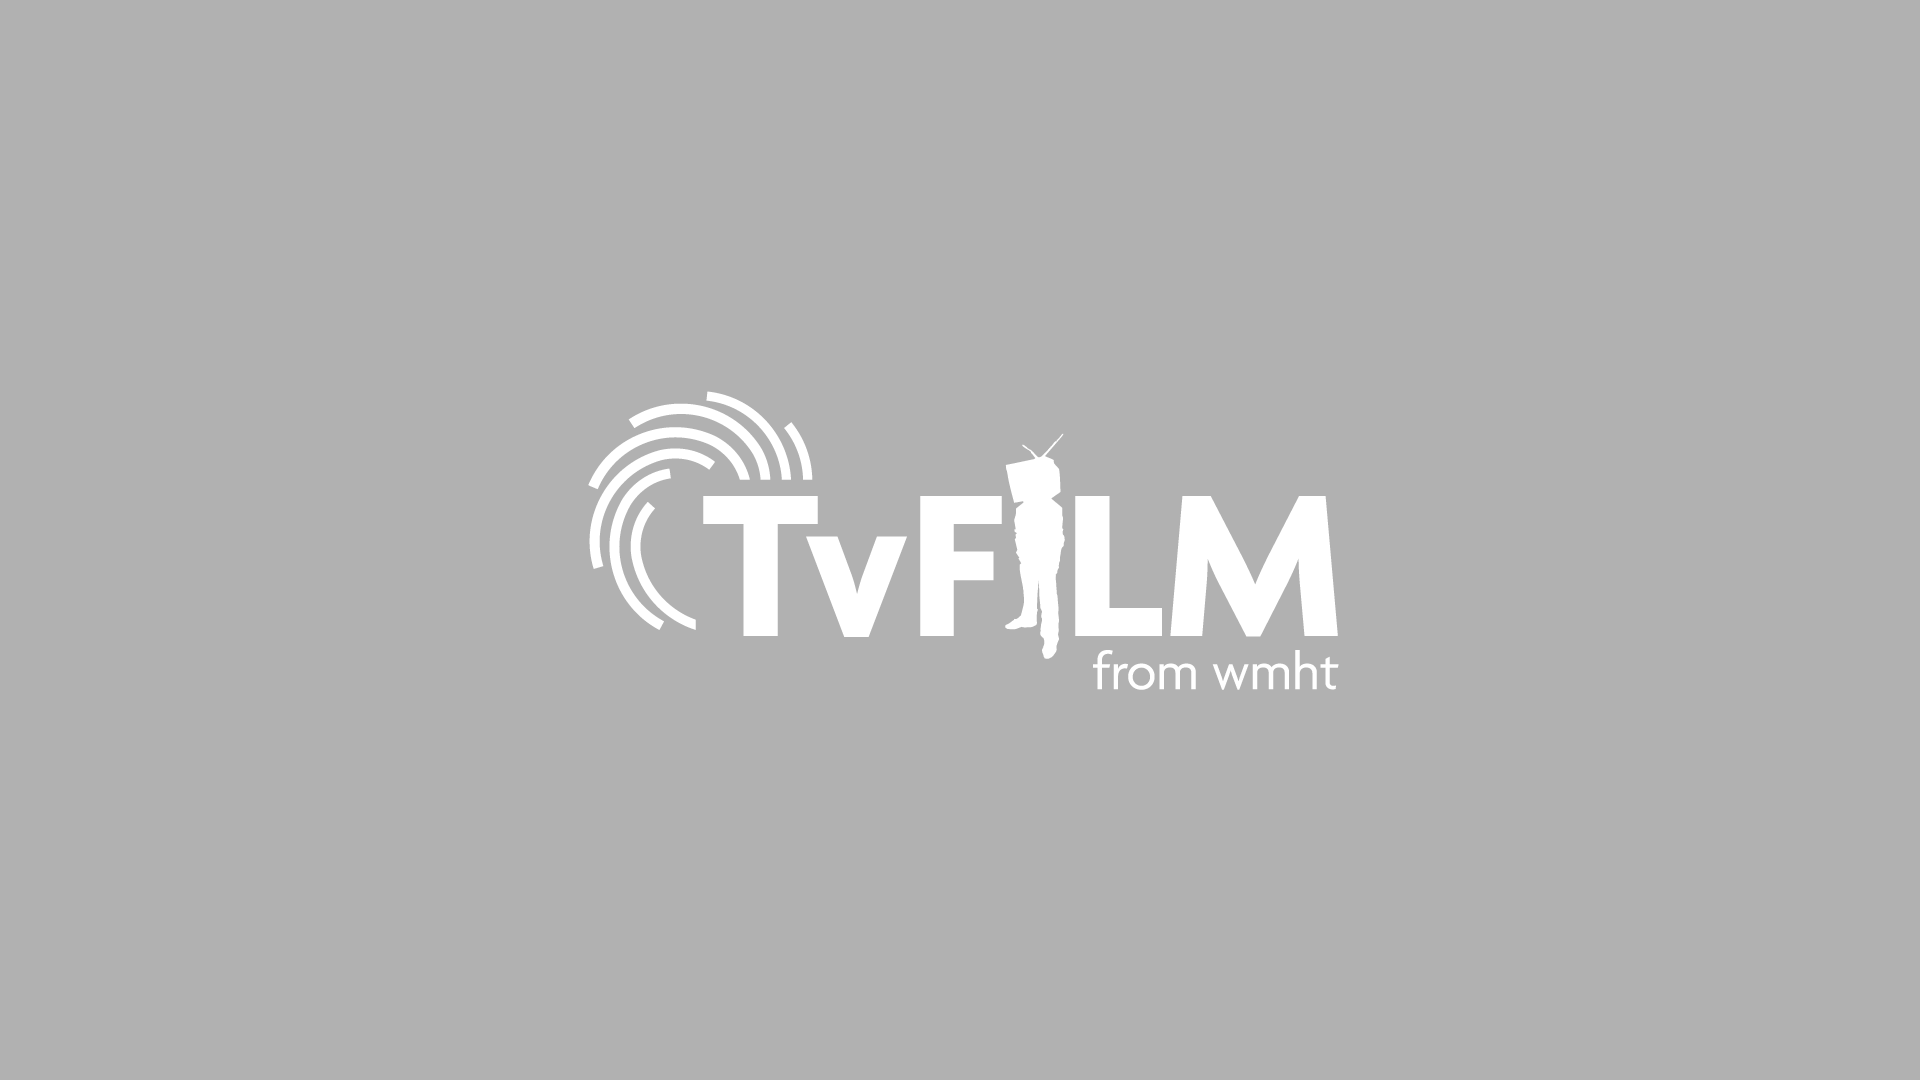 TvFILM title graphic with a dark transparent background.